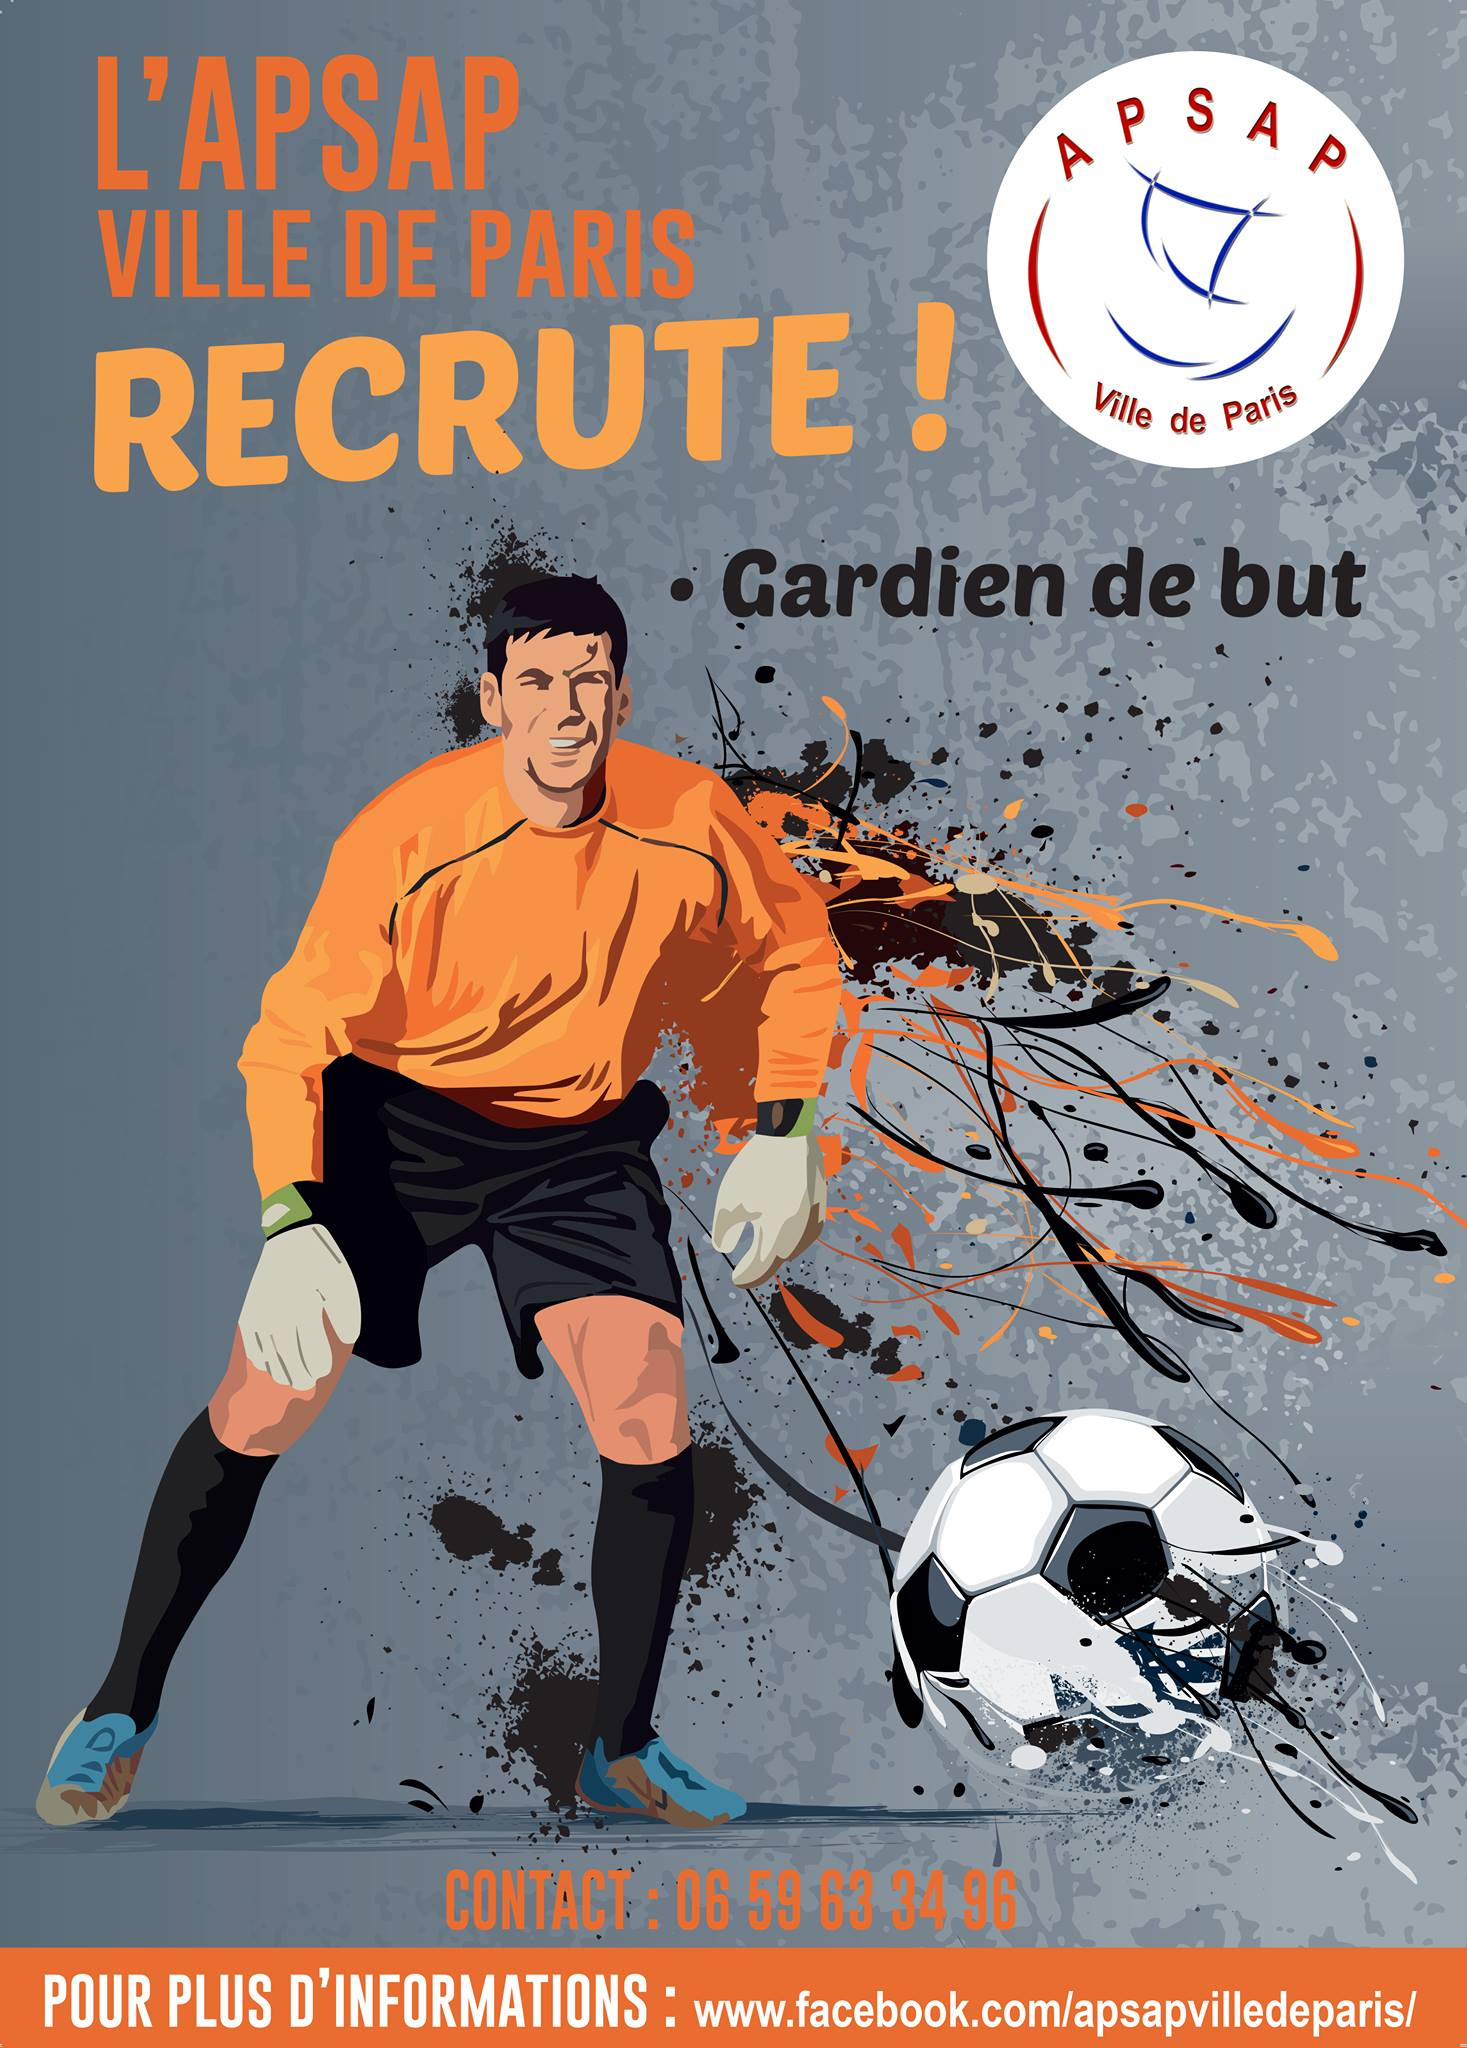 Apsap ville de paris recrute des gardiens de but foot à Paris